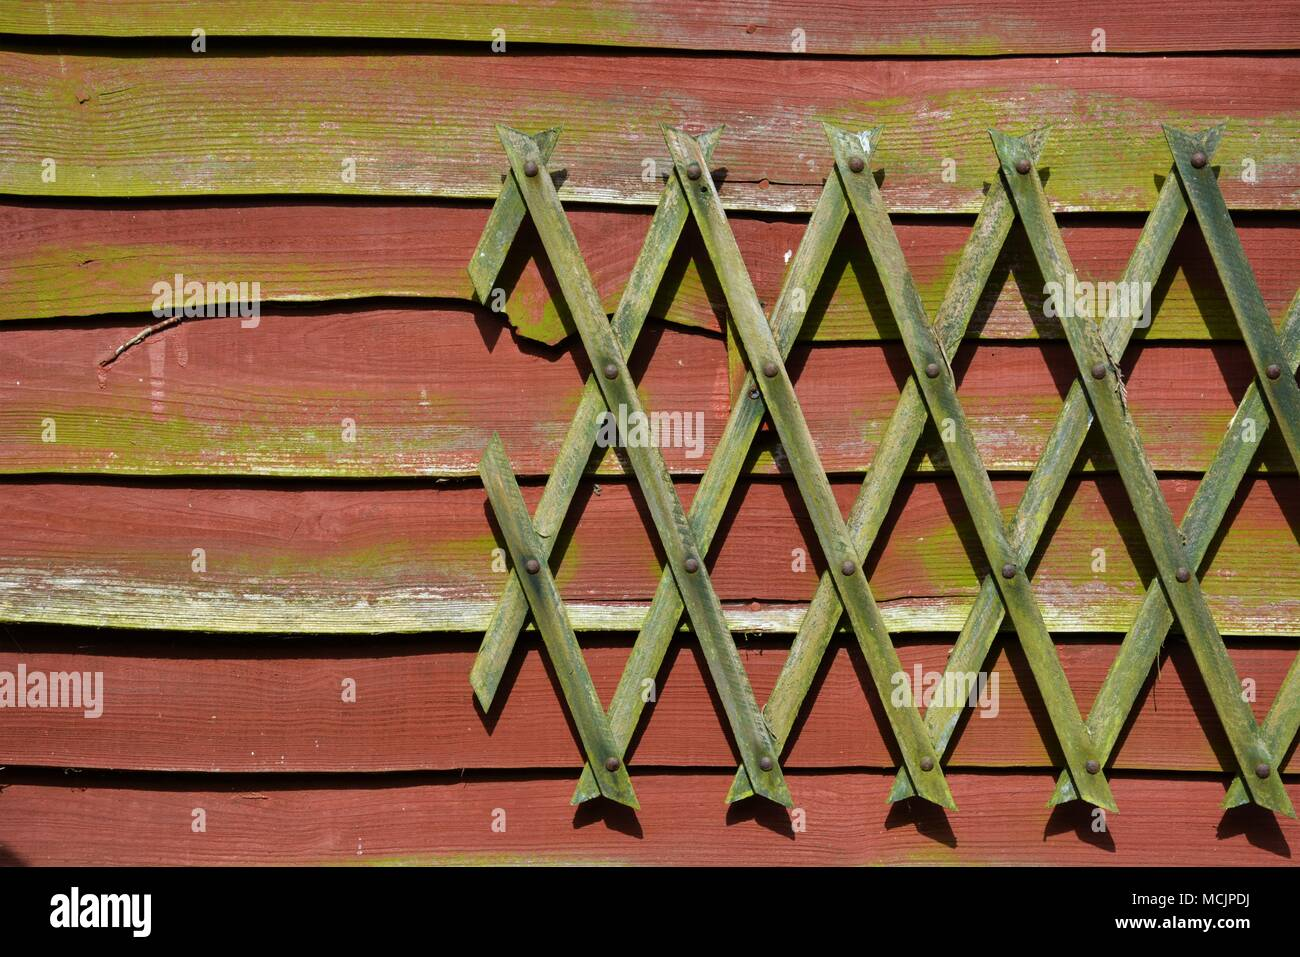 Mossy Wooden Fence Stock Images - Stock Image